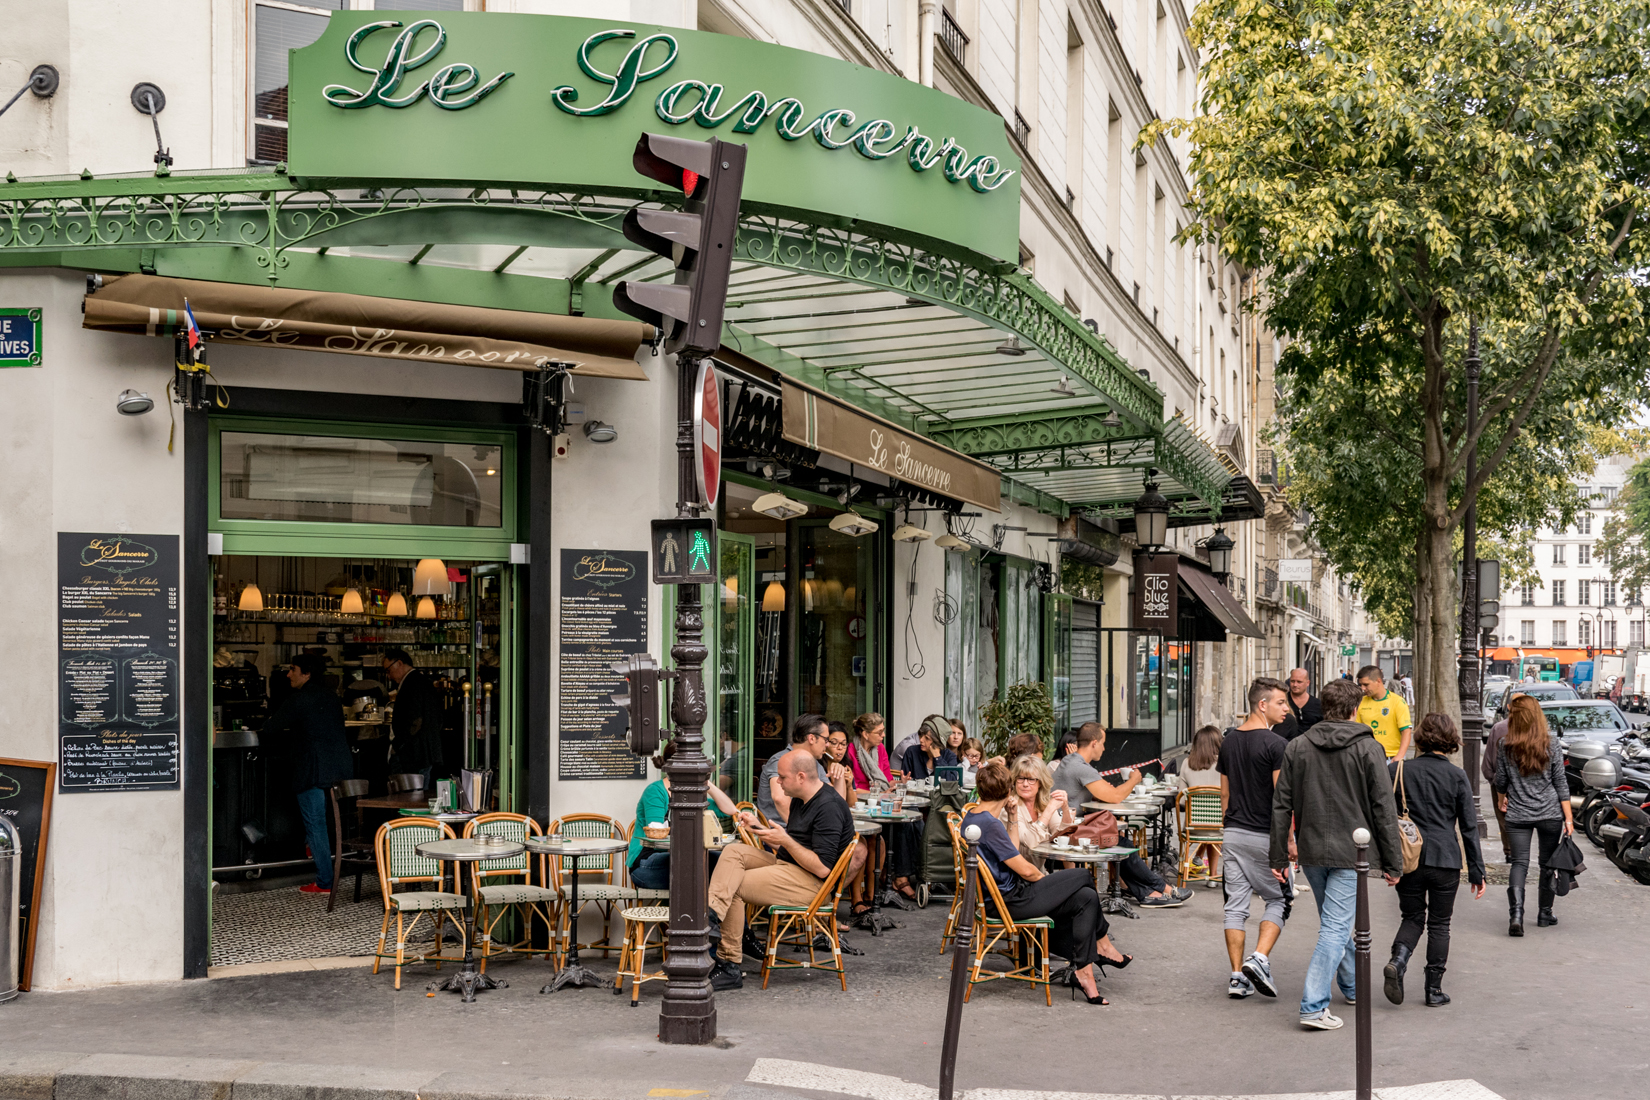 Café culture is at the heart of Parisienne life